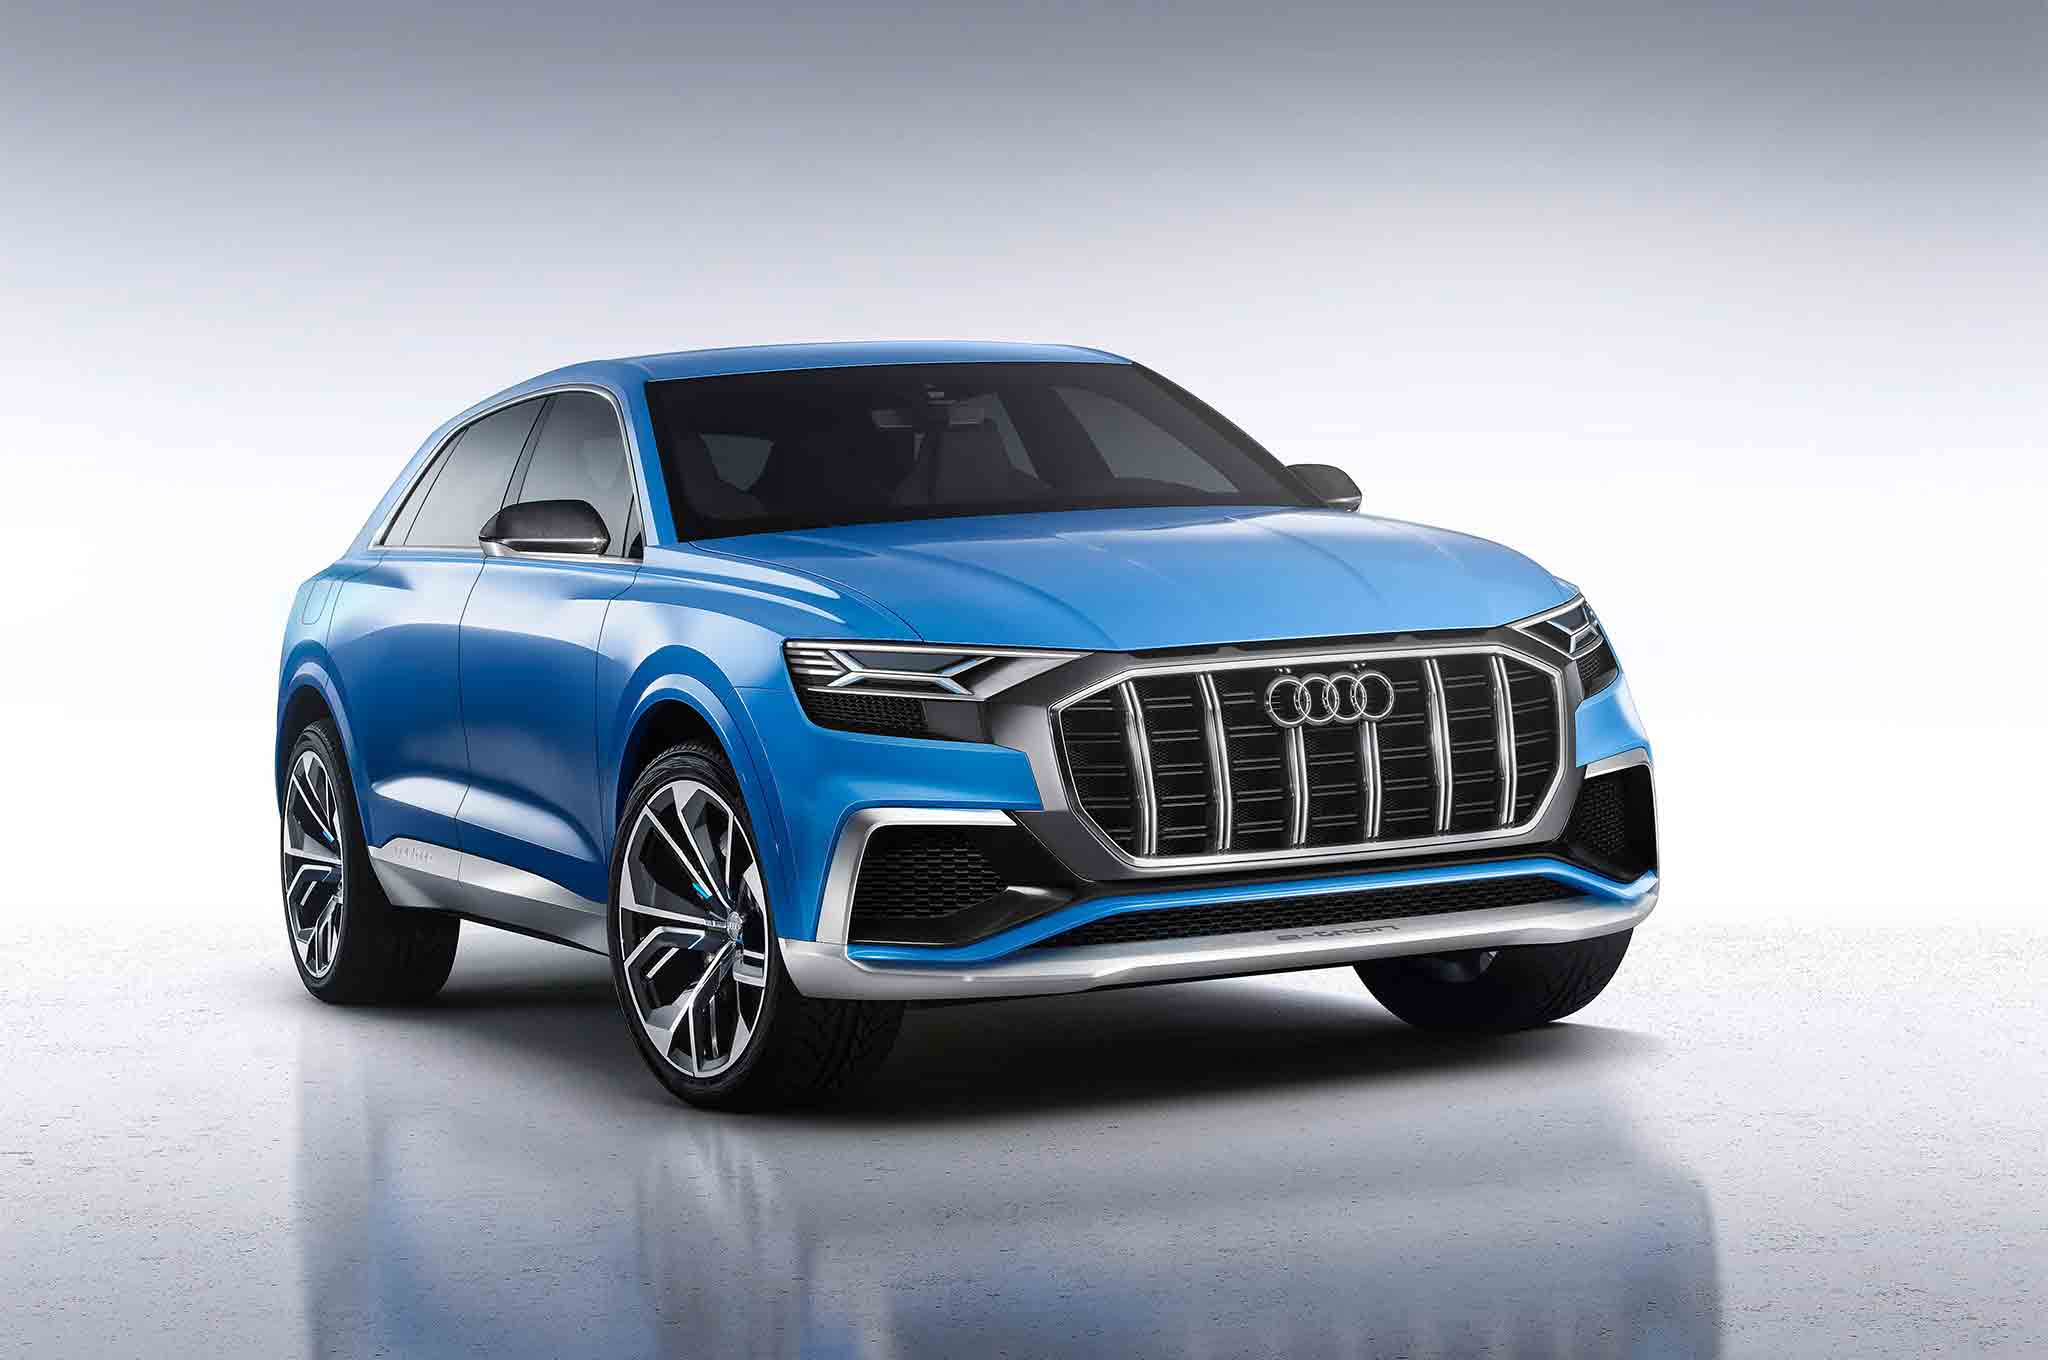 Audi Q8 Concept Front Three Quarter 04 57